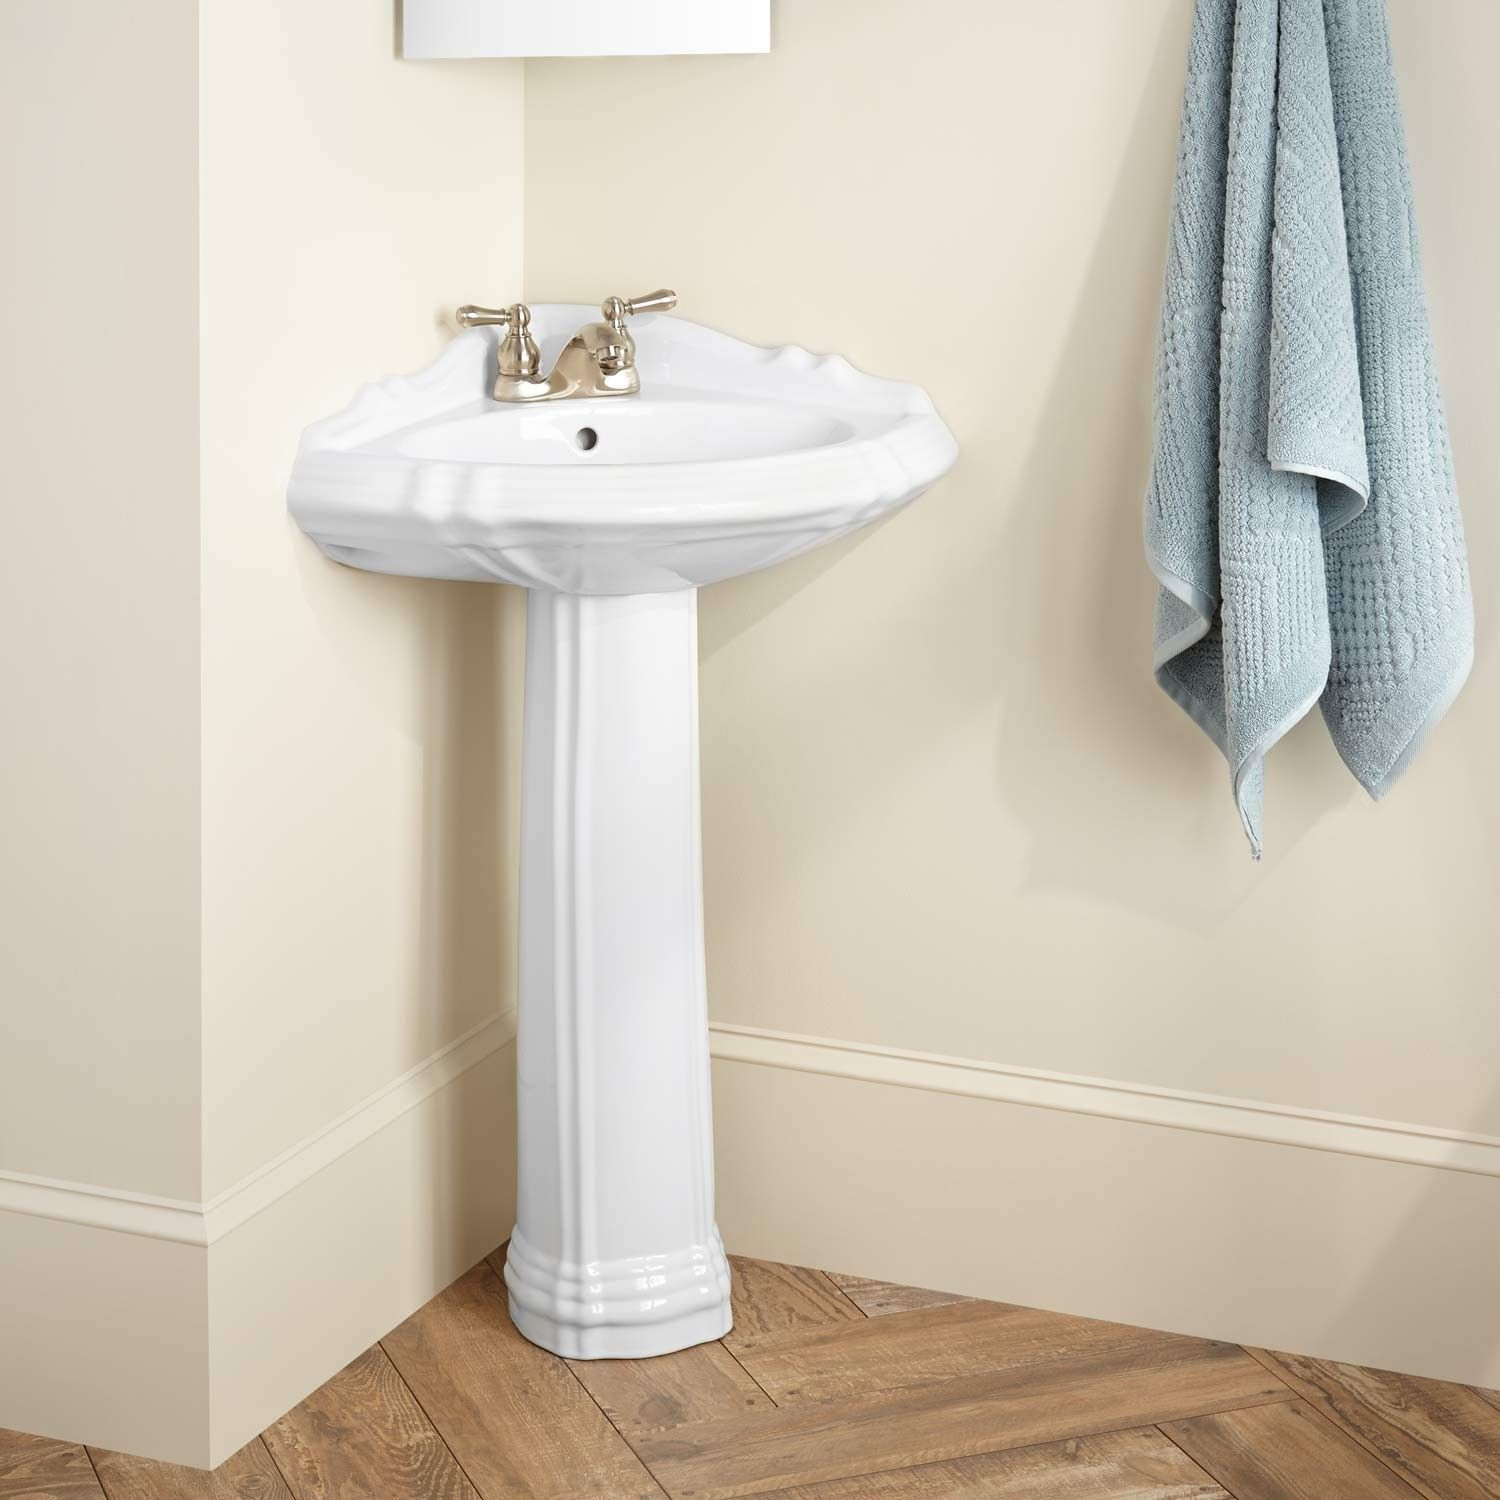 Regent Corner Porcelain Pedestal Sink Corner Sink Bathroom Sink Bathroom Sink Design